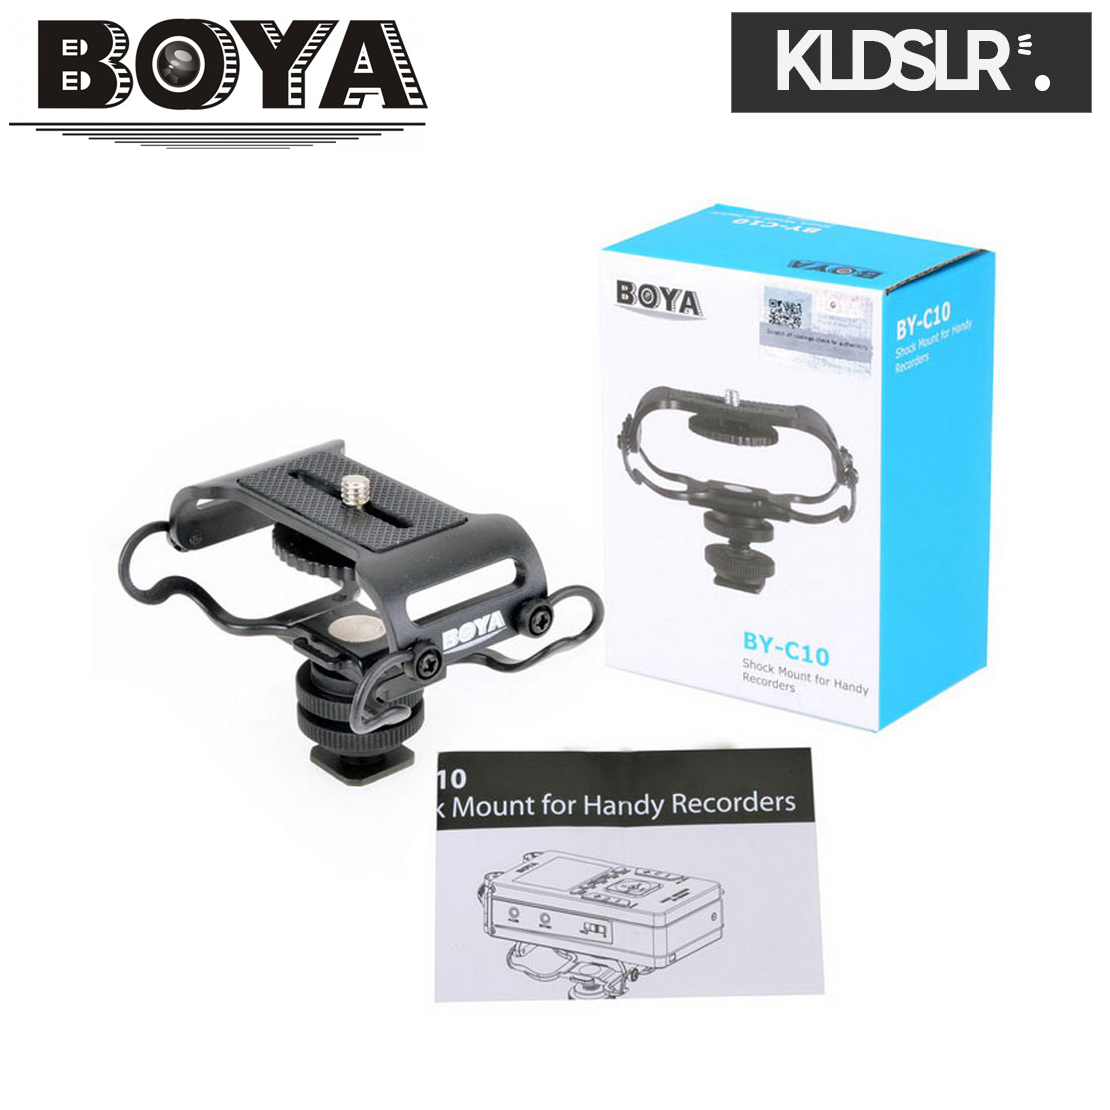 BOYA BY-C10 Anti-Shake Mount Base Shock Mount for Portable Handy Digital Audio Recorder DSLR